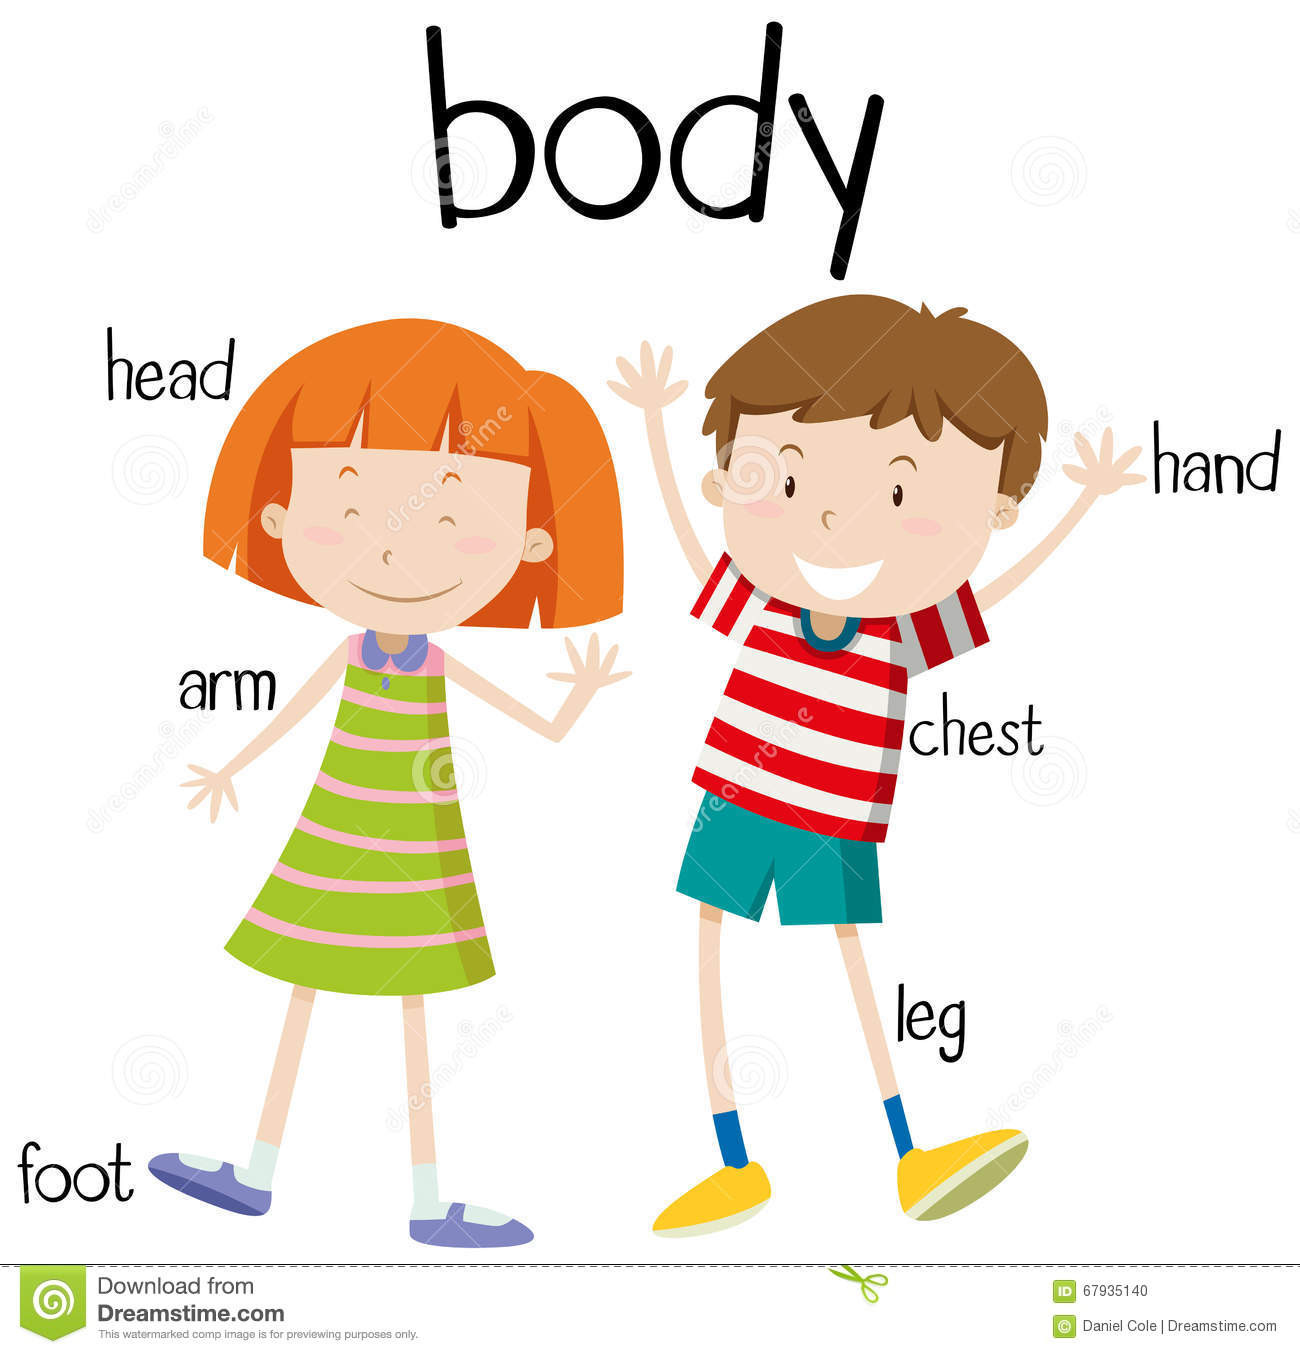 This is my body clipart graphic Body clipart my body, Body my body Transparent FREE for ... graphic